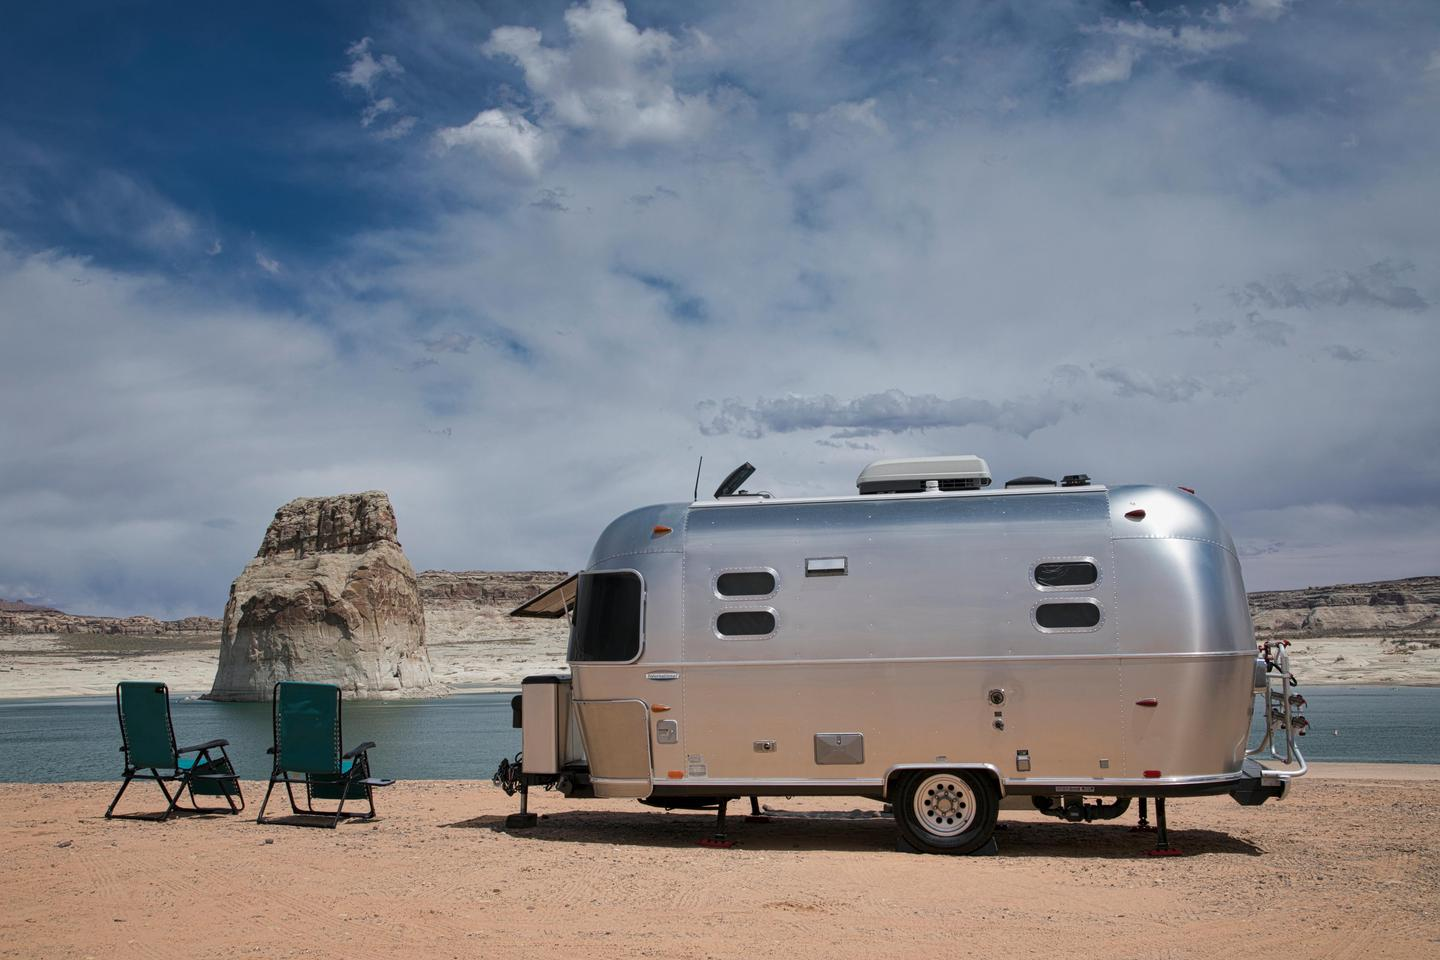 Lone Rock Beach Primitive Camping - TrailerPark yourself for a few nights on the beach at Lone Rock